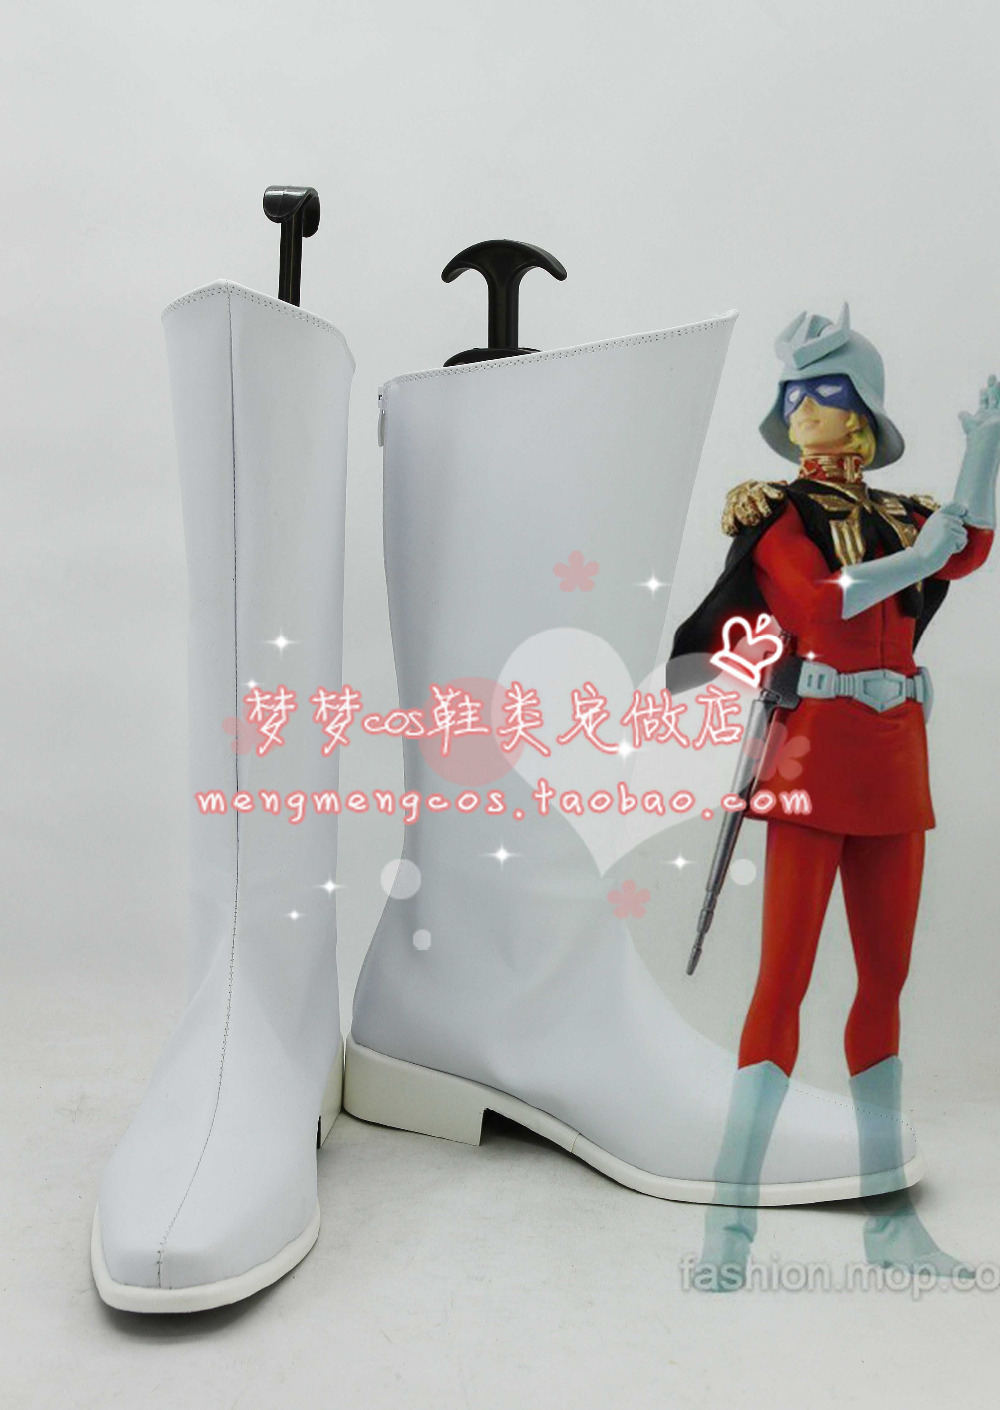 MOBILE SUIT font b GUNDAM b font Cosplay Shoes Char Aznable Japan Anime Party Boots Tailor